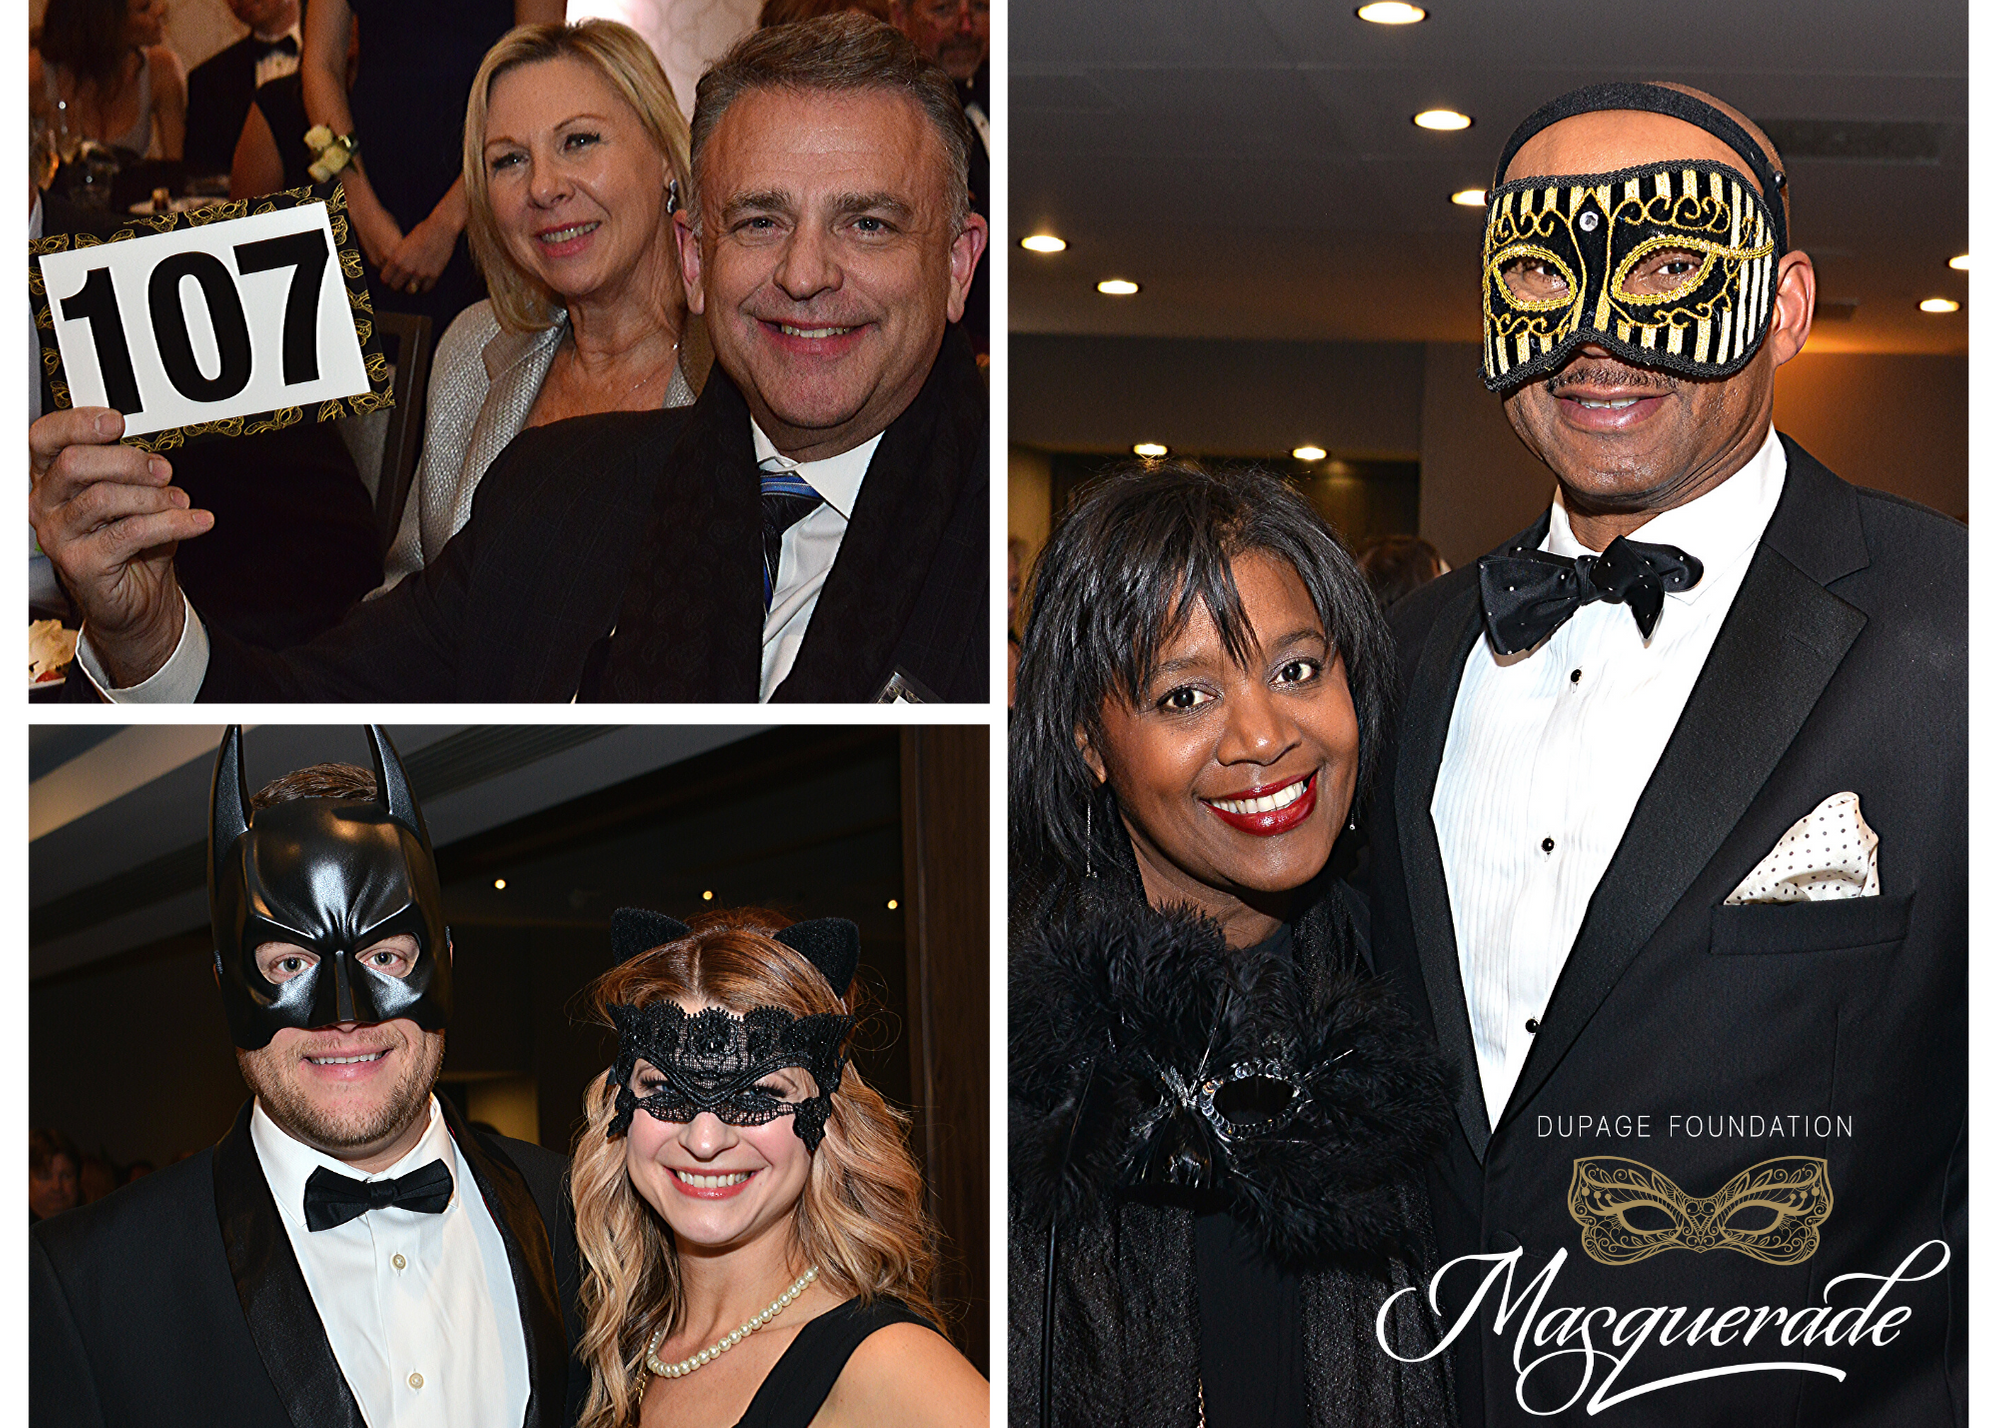 DuPage Foundation Masquerade Benefit Raises Nearly $385,000 While Unmasking Local Areas of Need